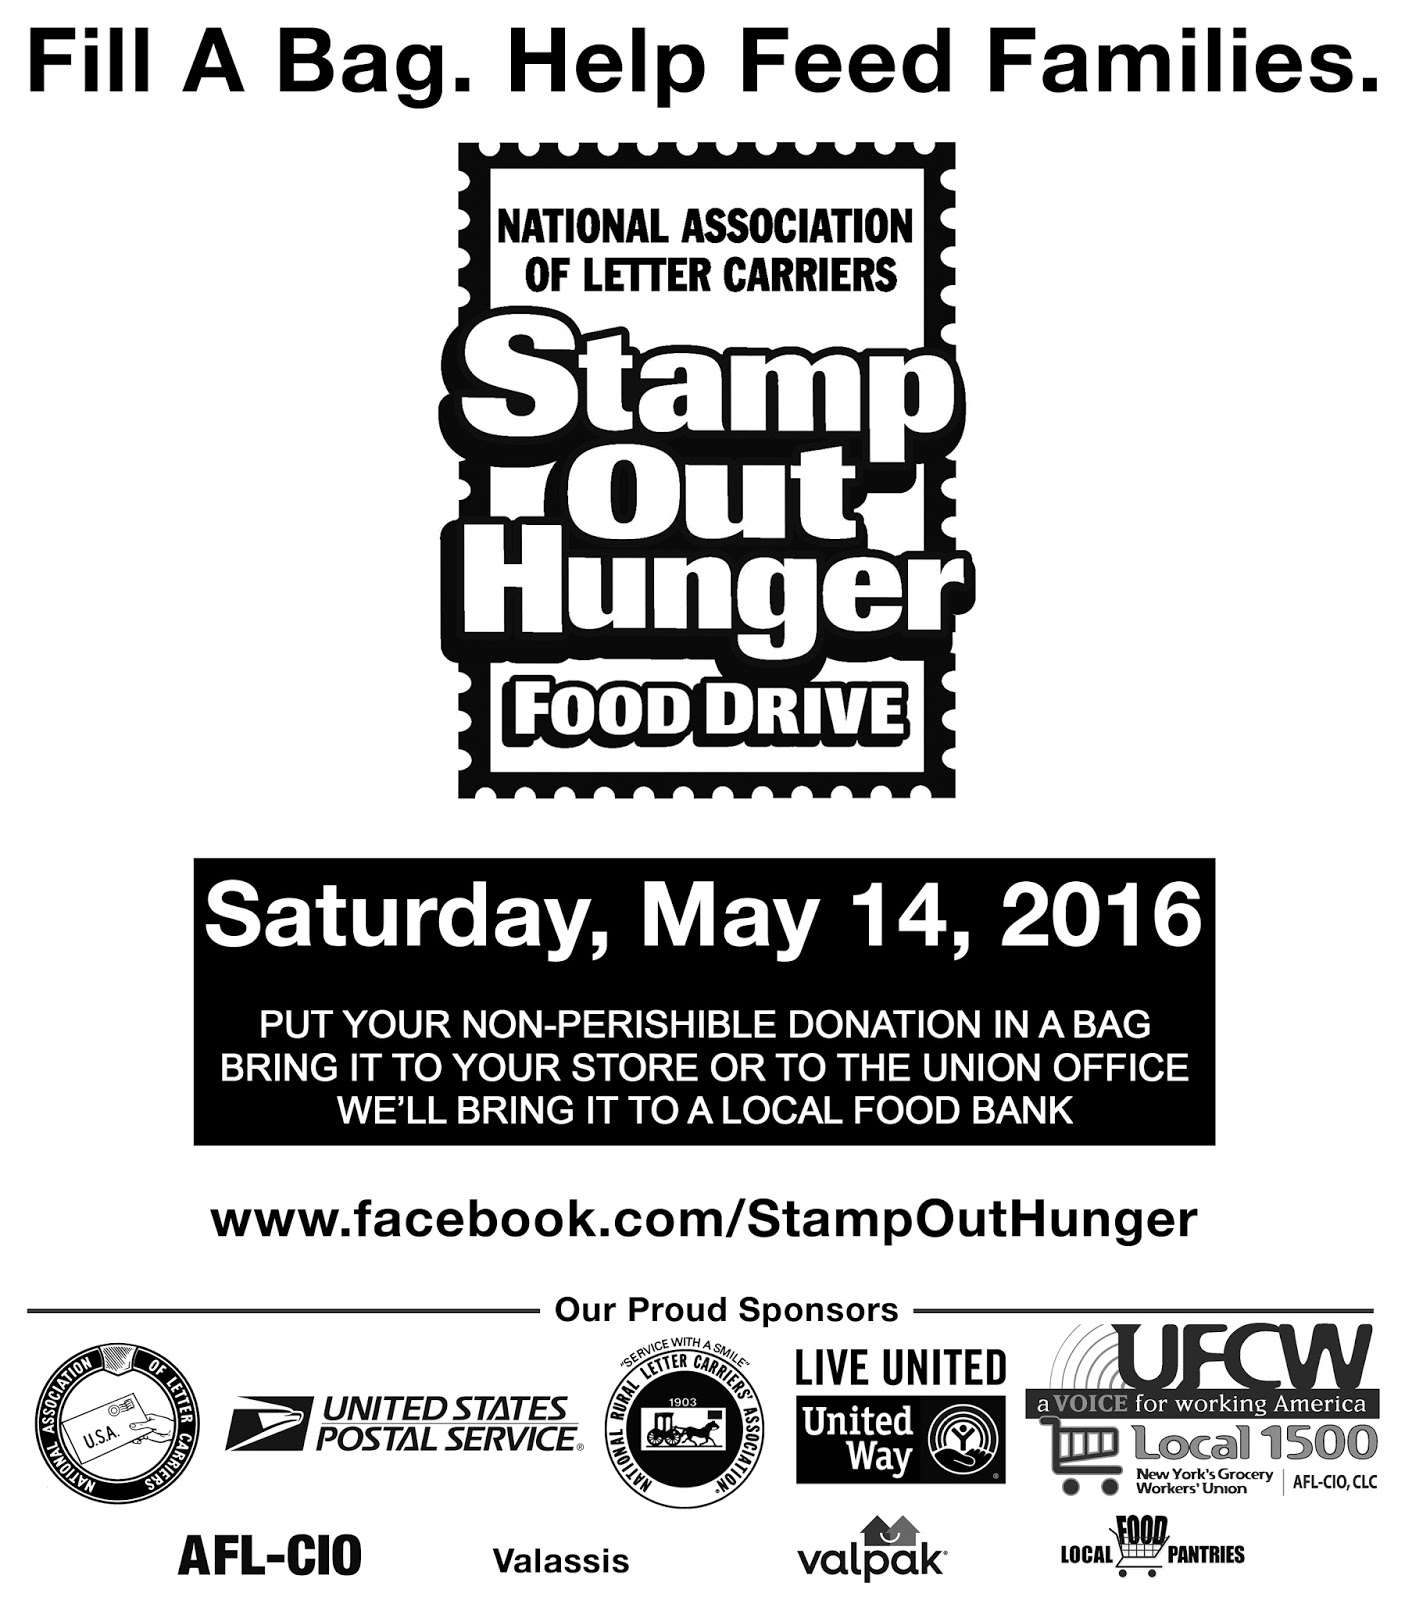 UFCW Local 1500 Blog: Stamp Out Hunger-